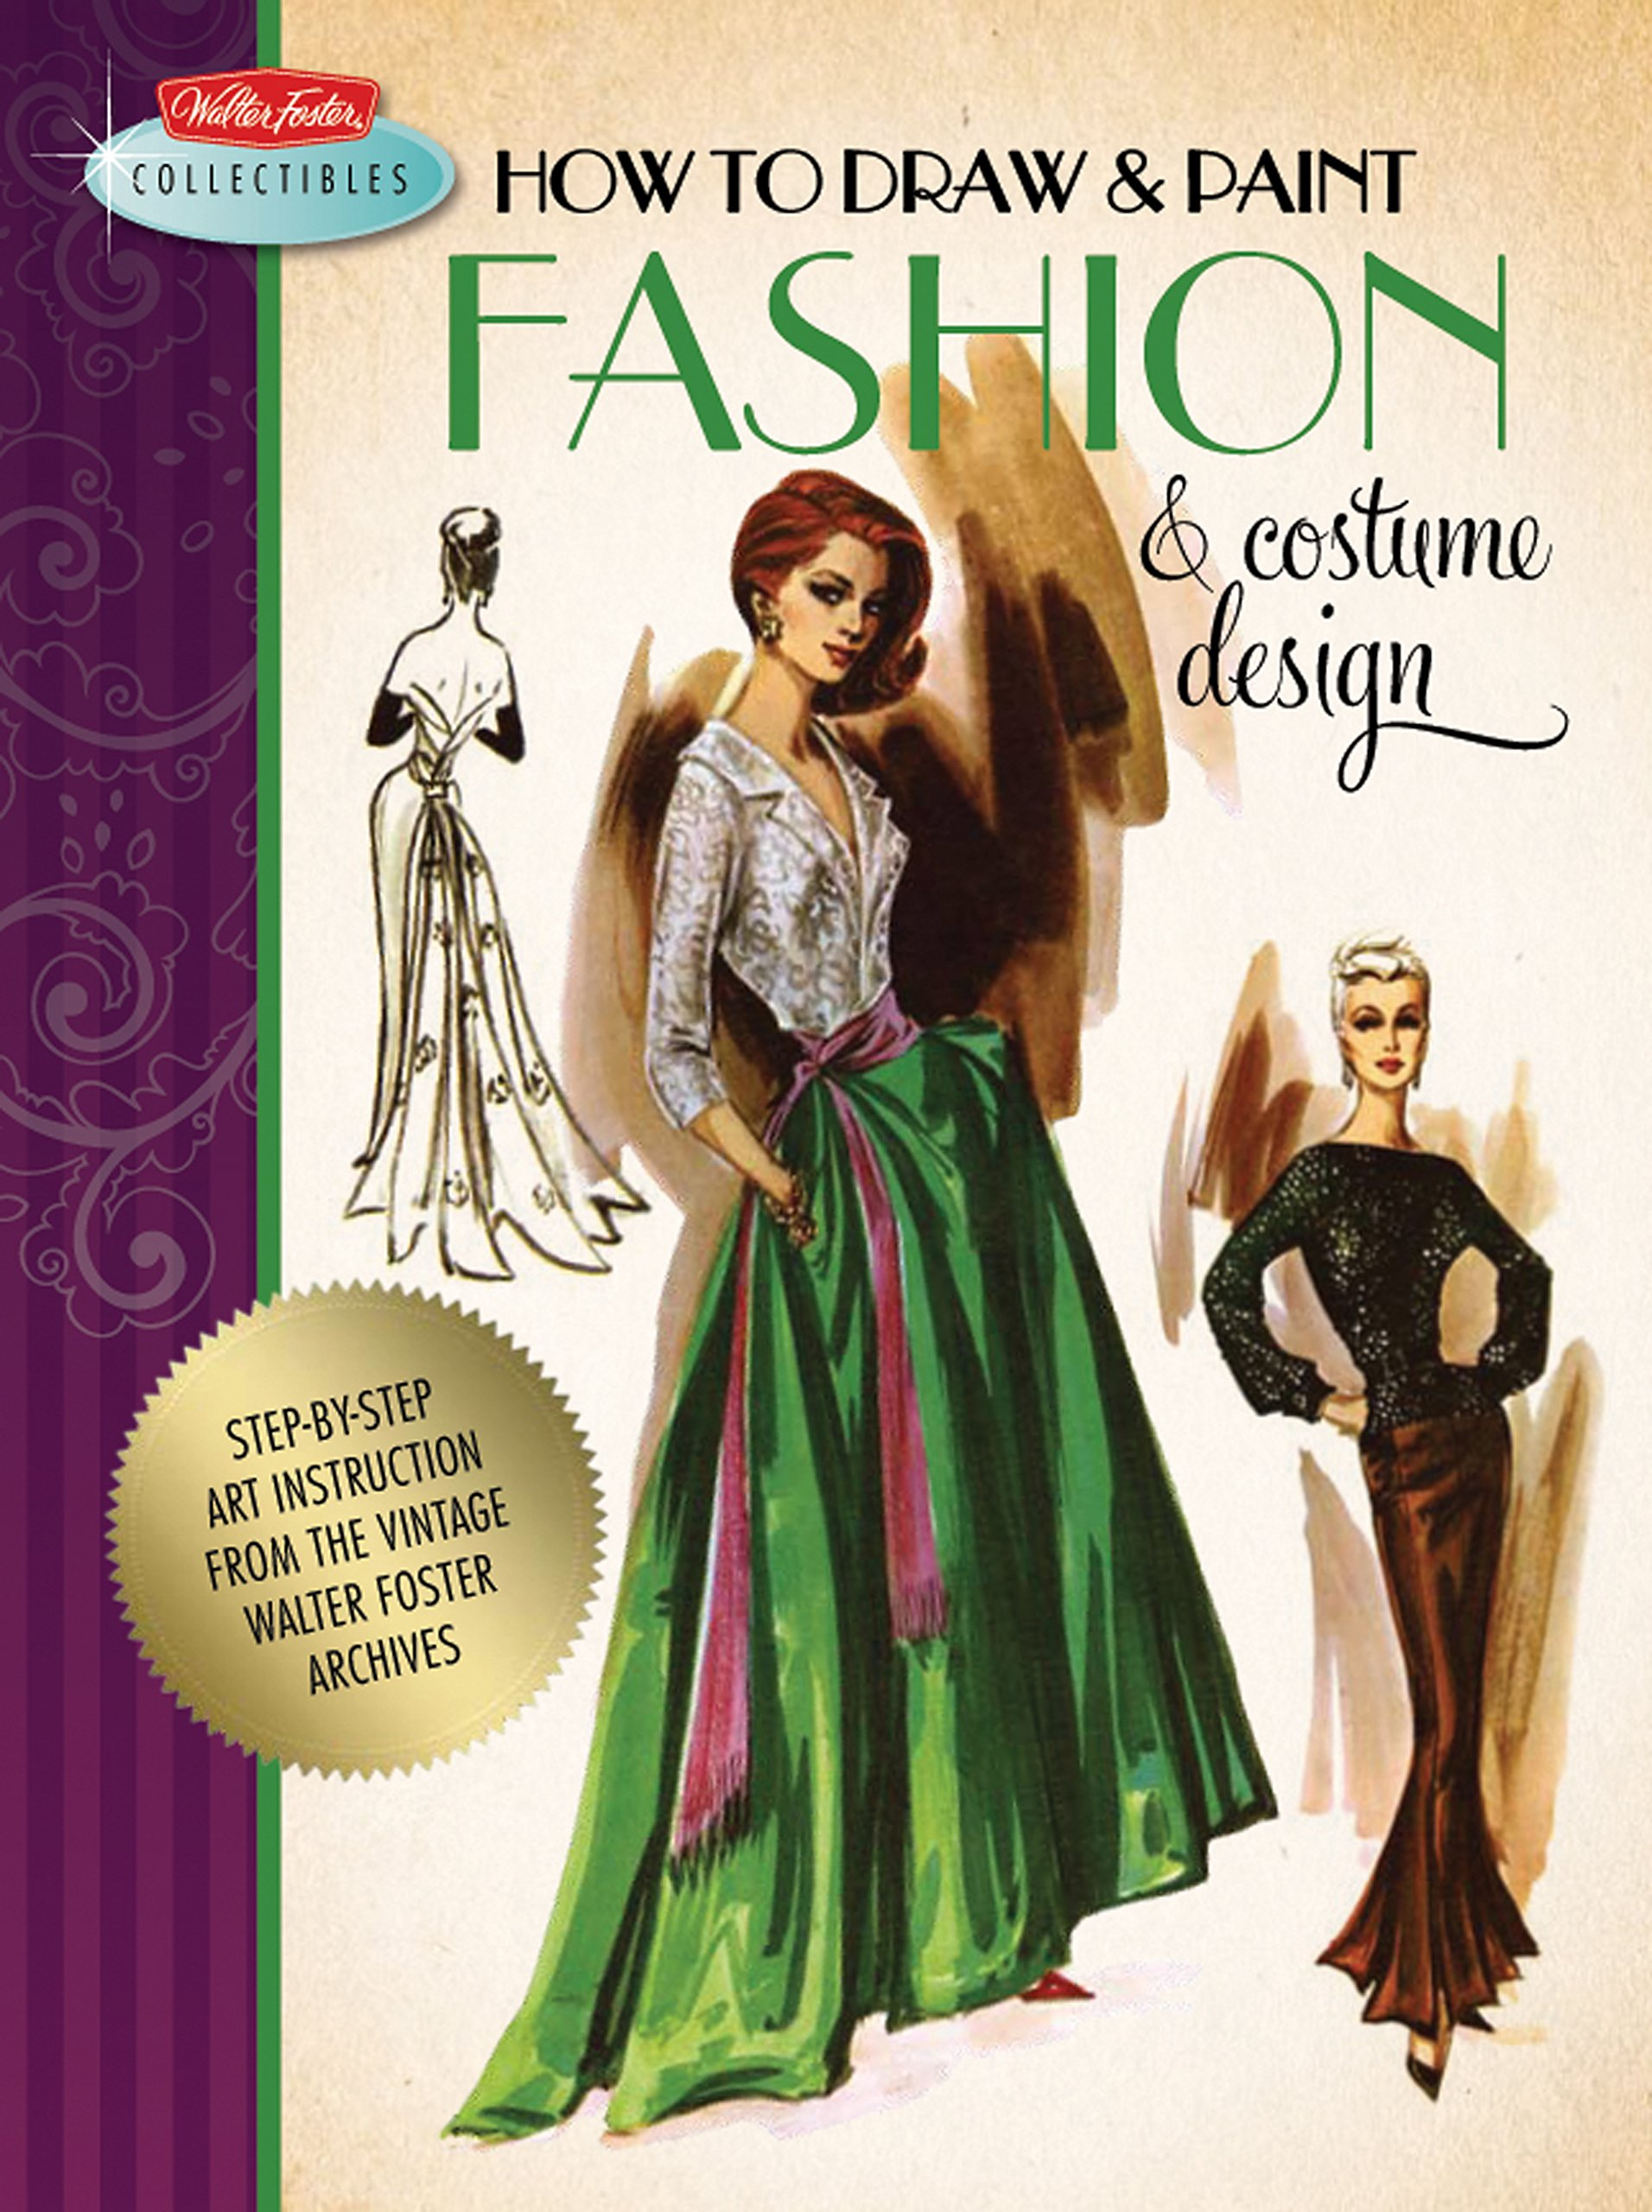 How To Draw Paint Fashion Costume Design Artistic Inspiration And Instruction From The Vintage Walter Foster Archives Walter Foster Collectibles Walter Foster Creative Team 0499991613298 Amazon Com Books